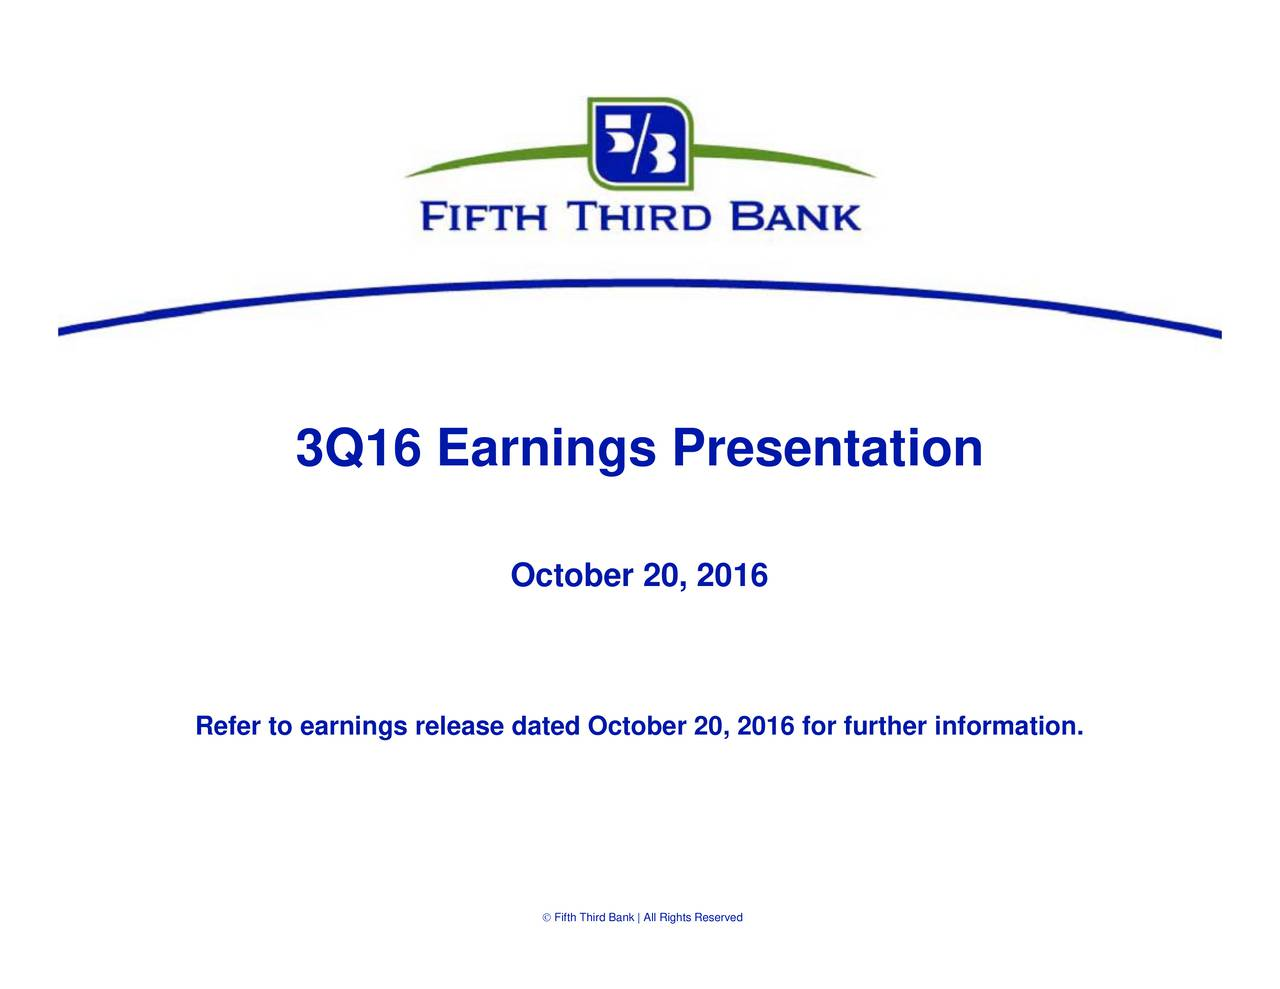 ifth Third Bank | All Rights Reserved October 20, 2016 3Q16 Earnings Presentation Refer to earnings release dated Oct